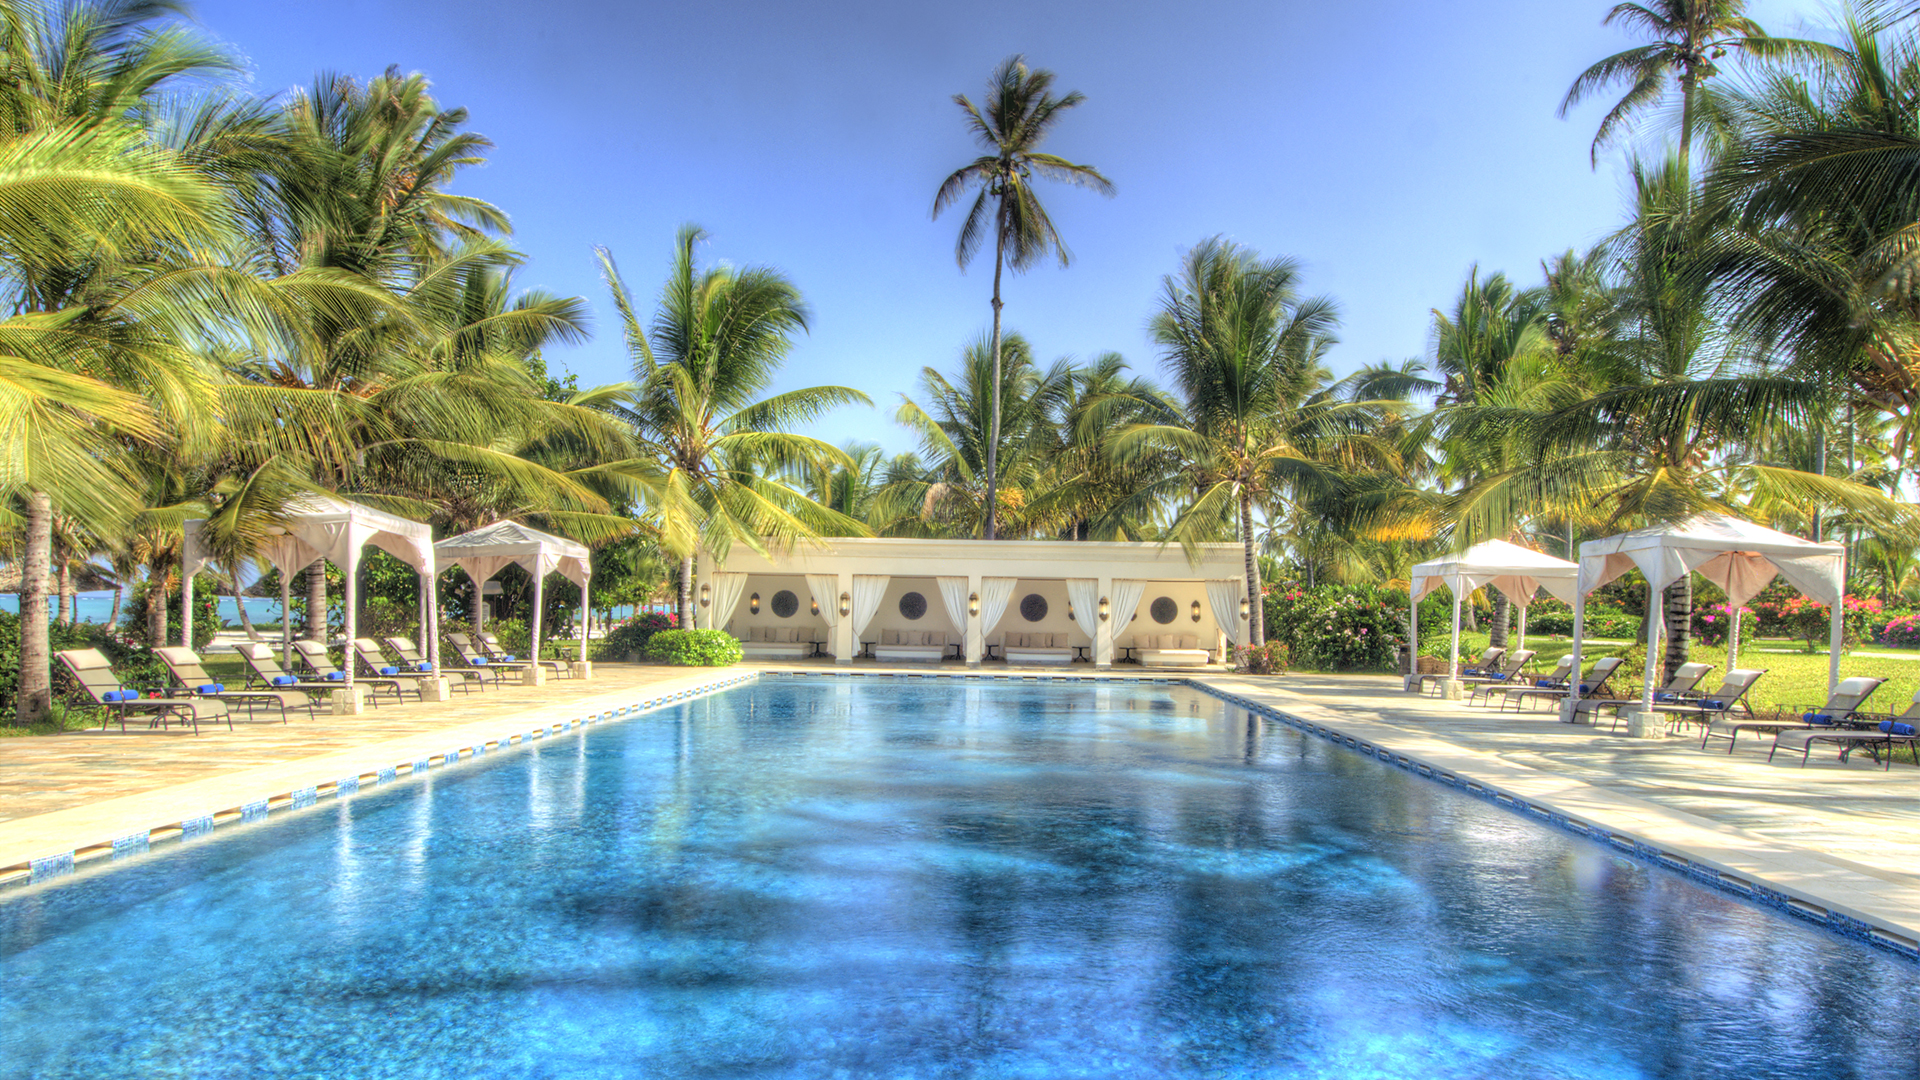 Baraza Resort & Spa pool header